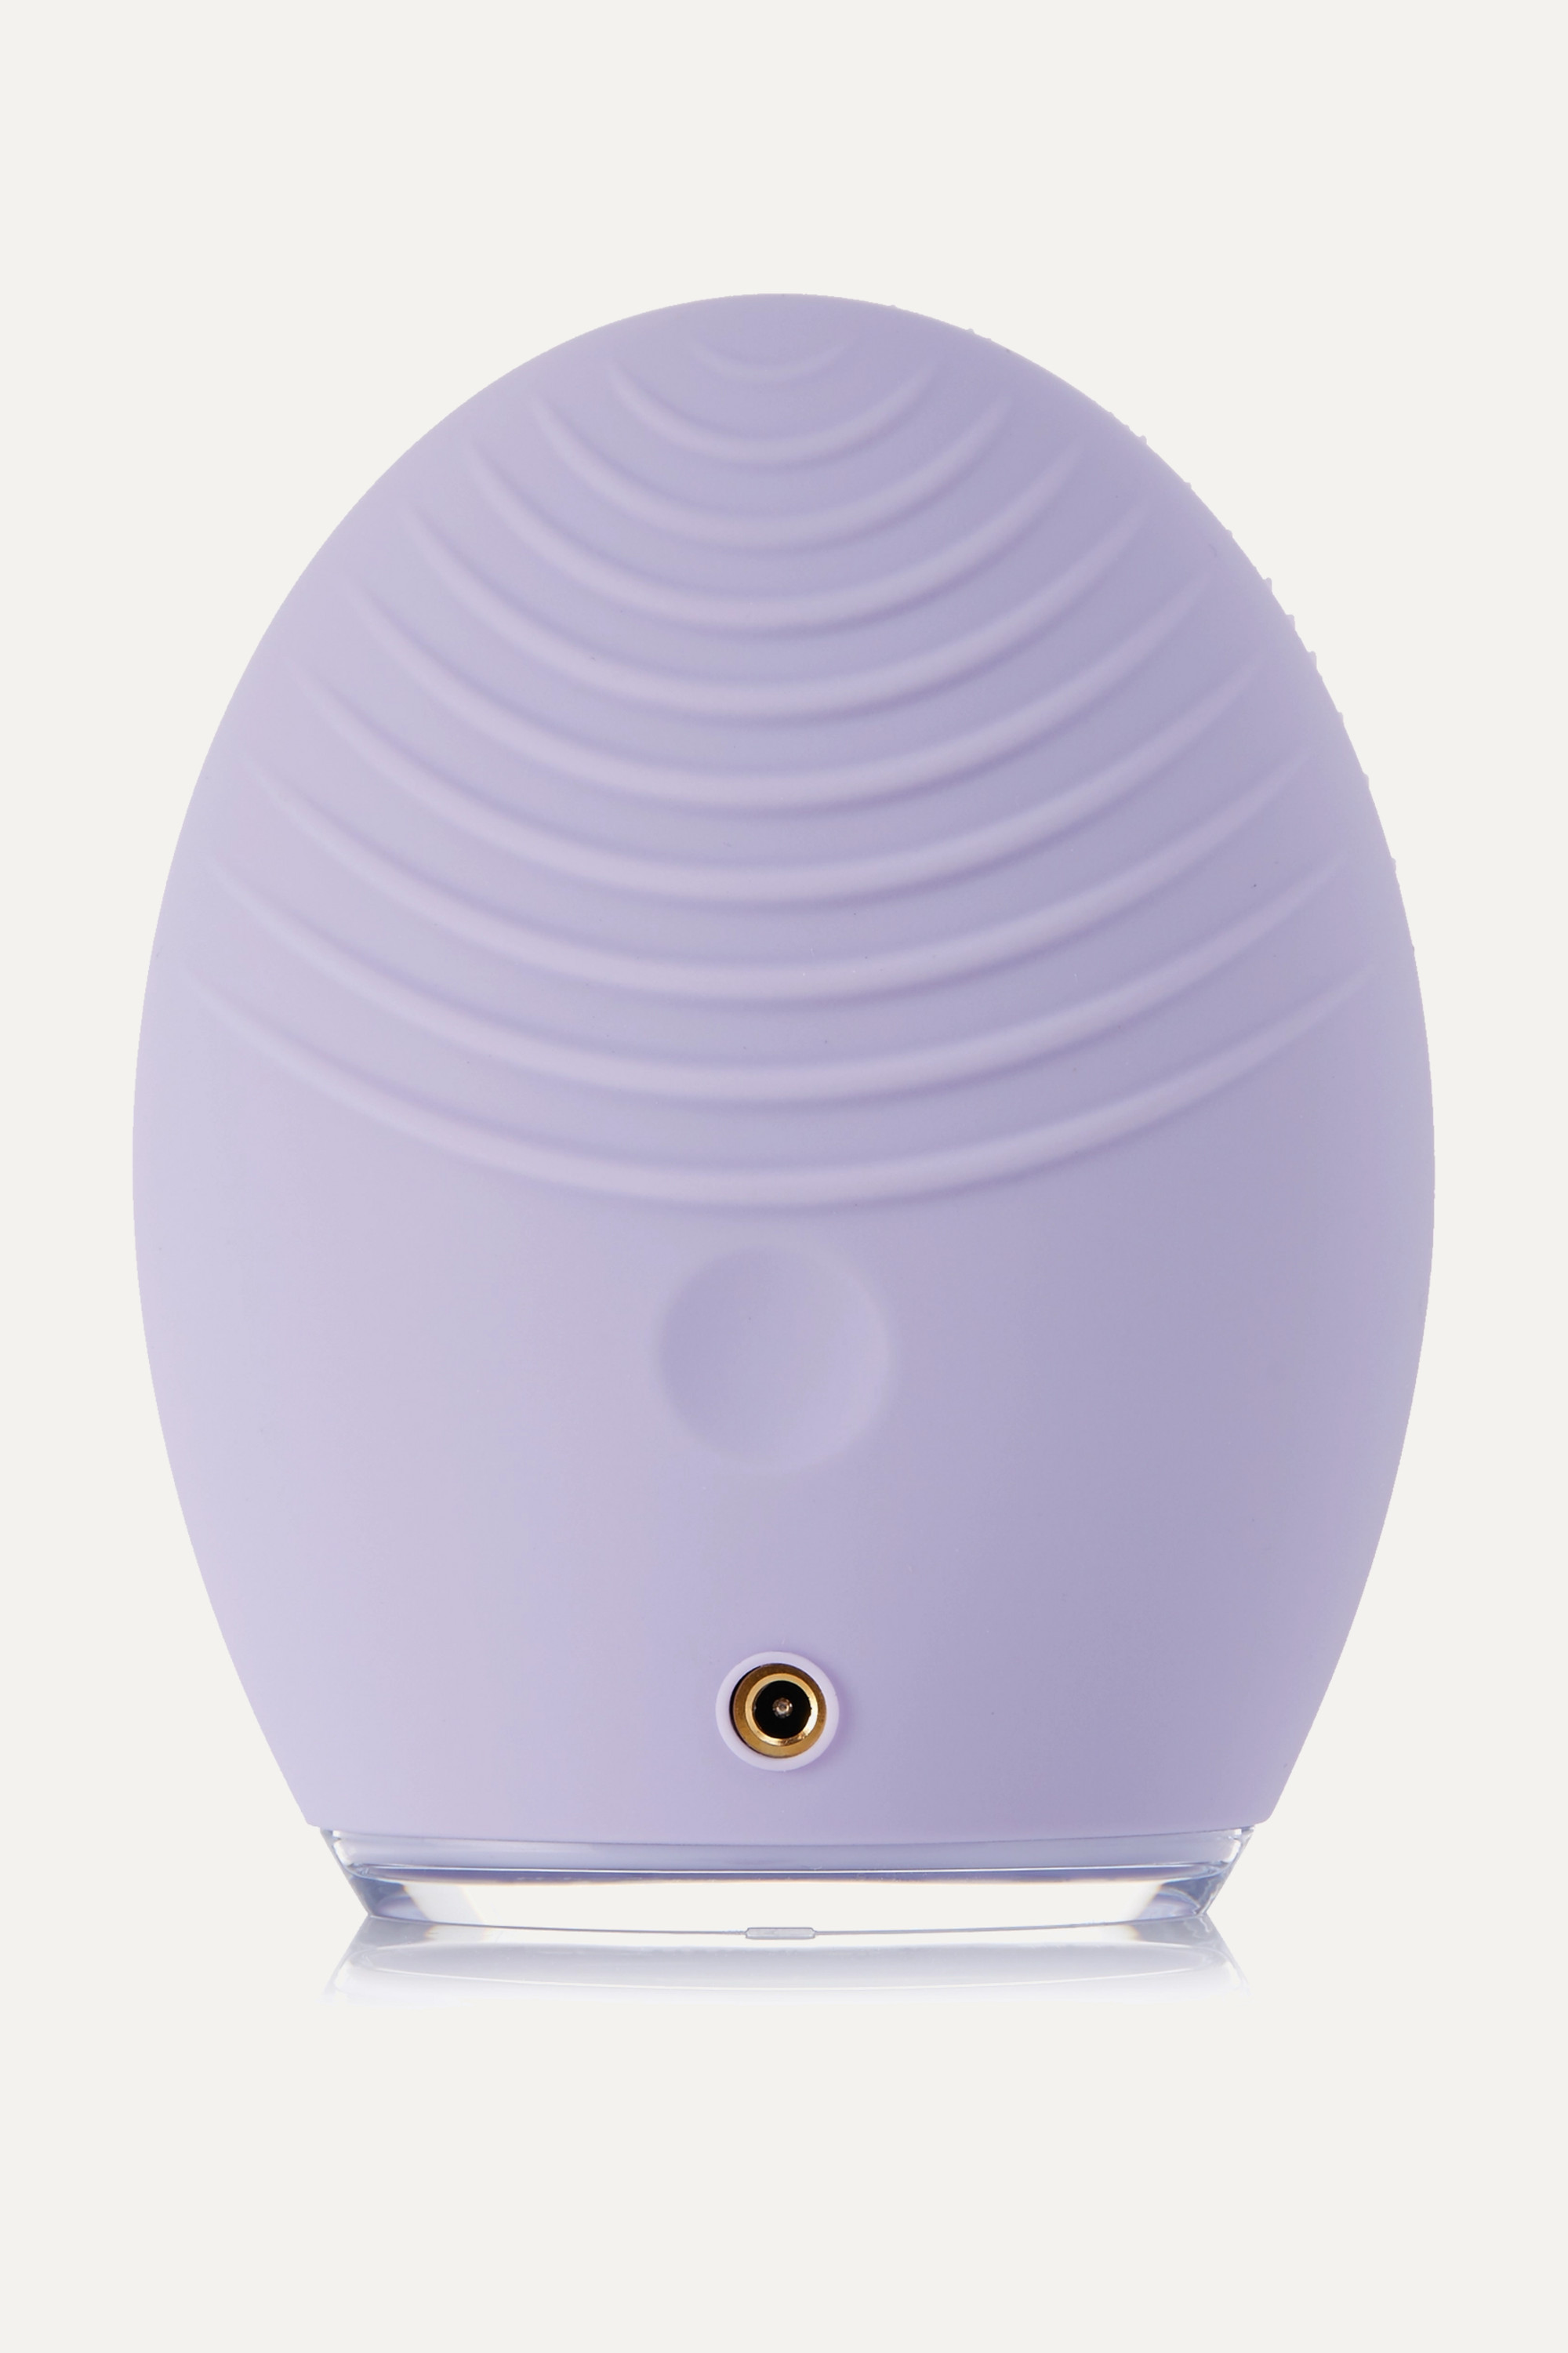 Foreo LUNA 3 Face Brush and Anti-Aging Massager for Sensitive Skin